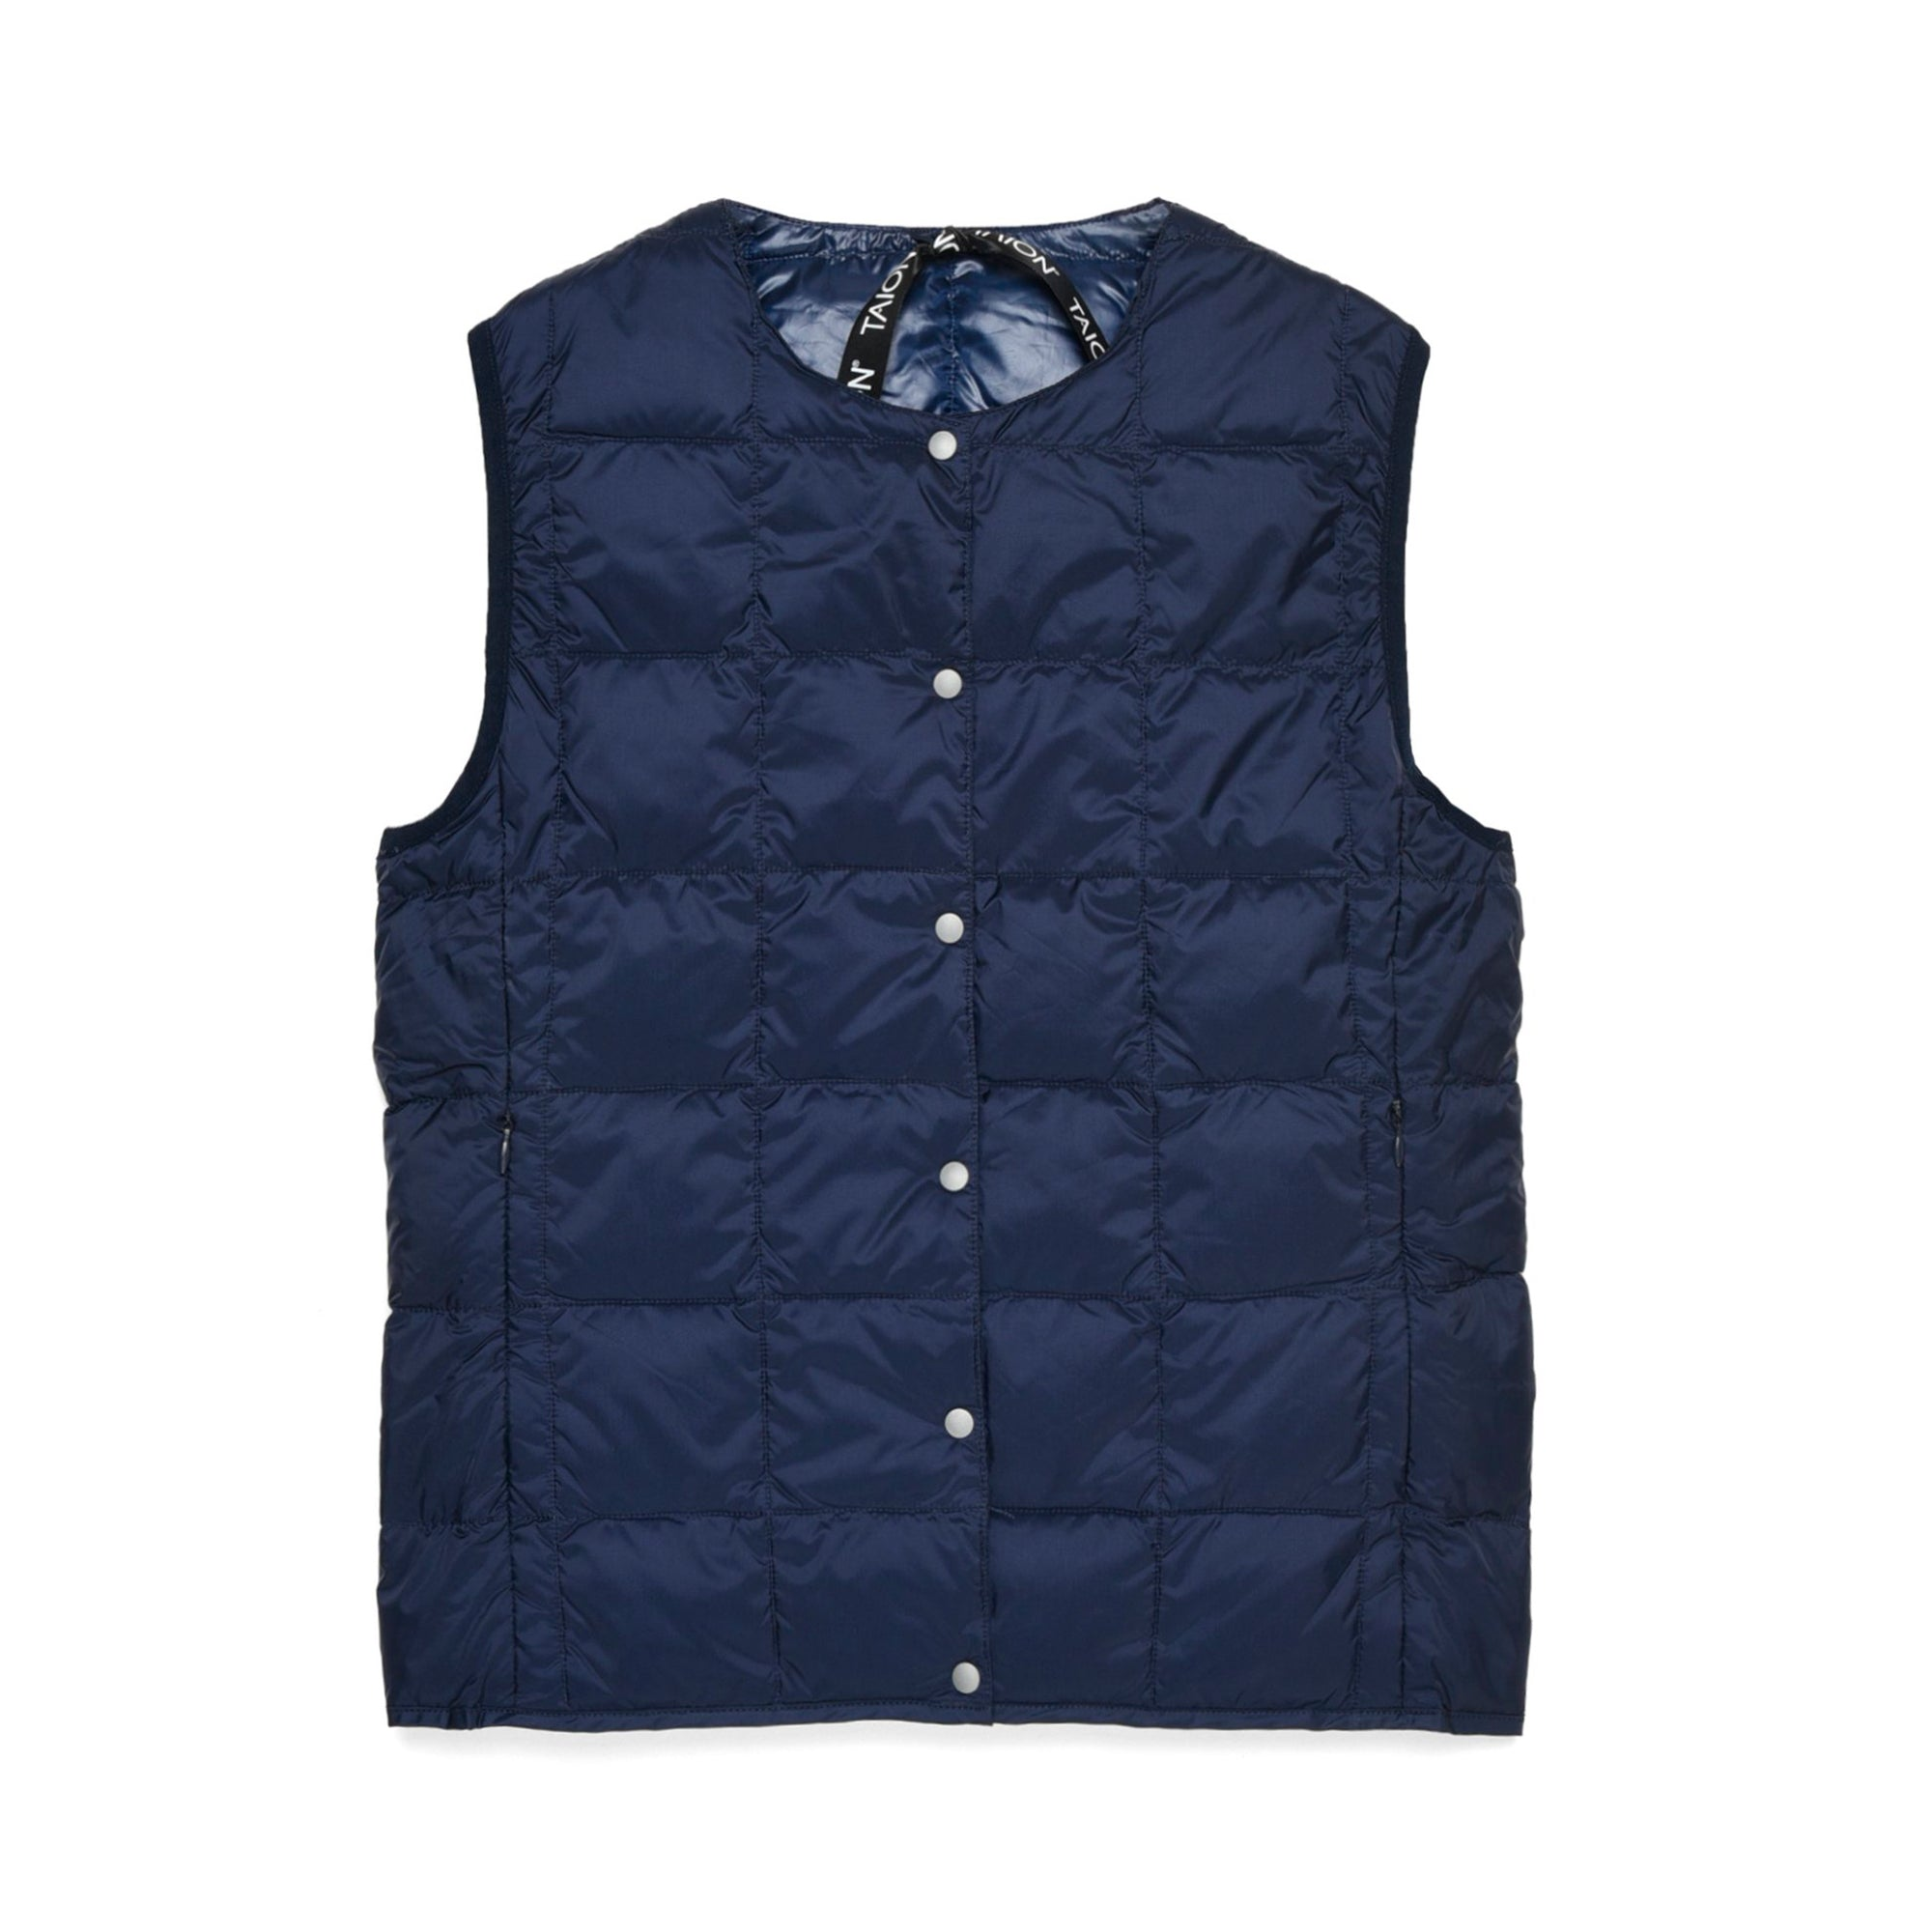 Taion Womens Crew Neck Button Down Vest: Navy - The Union Project